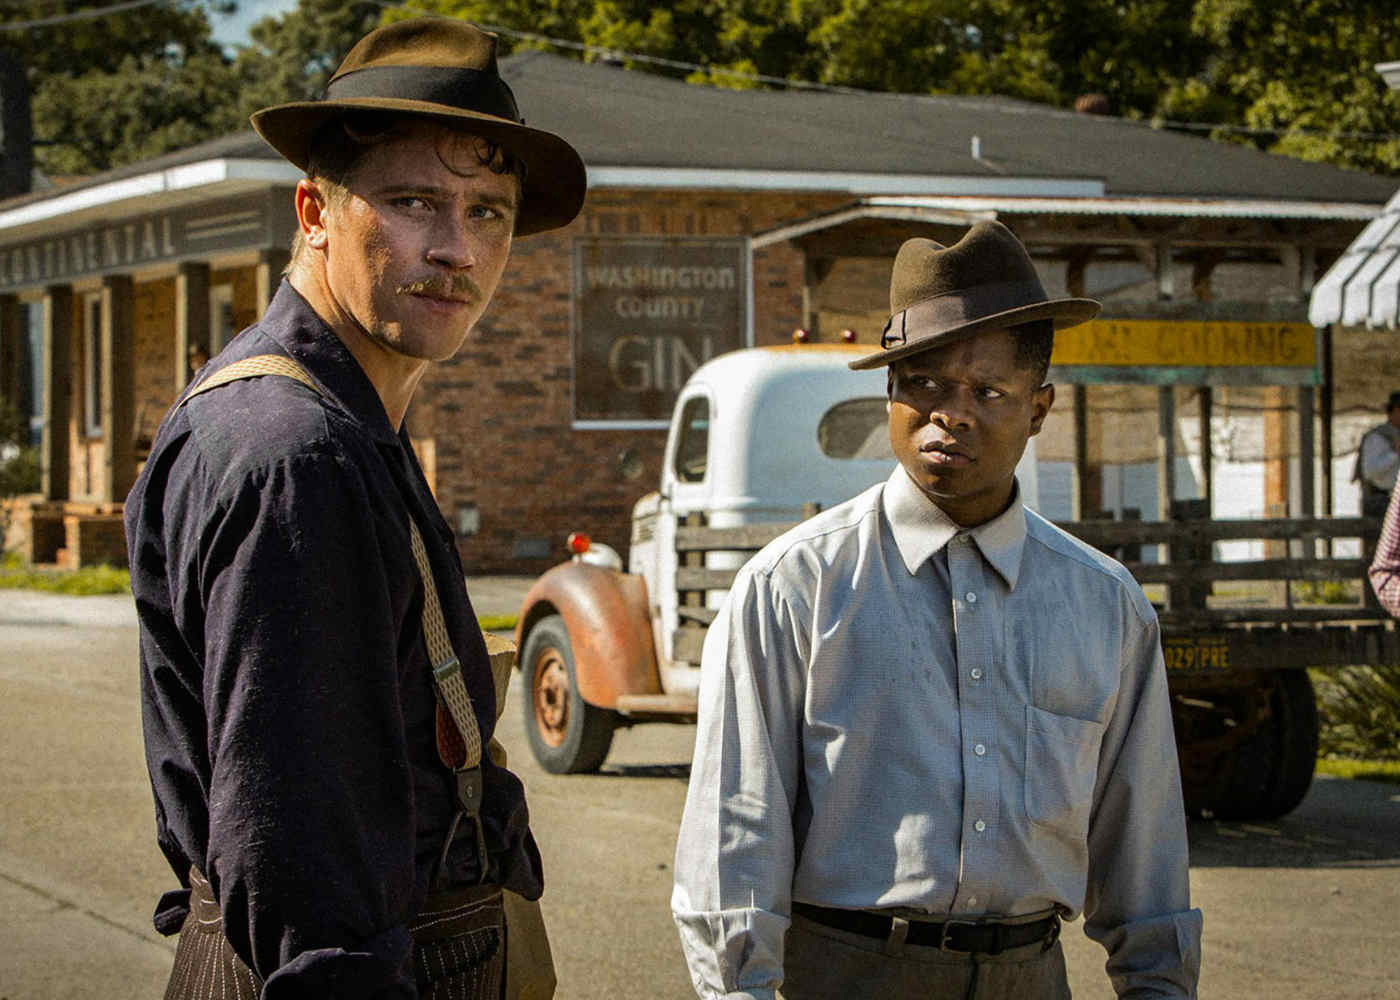 LFF 2017: 'Mudbound' Brings Netflix into the Awards Conversation